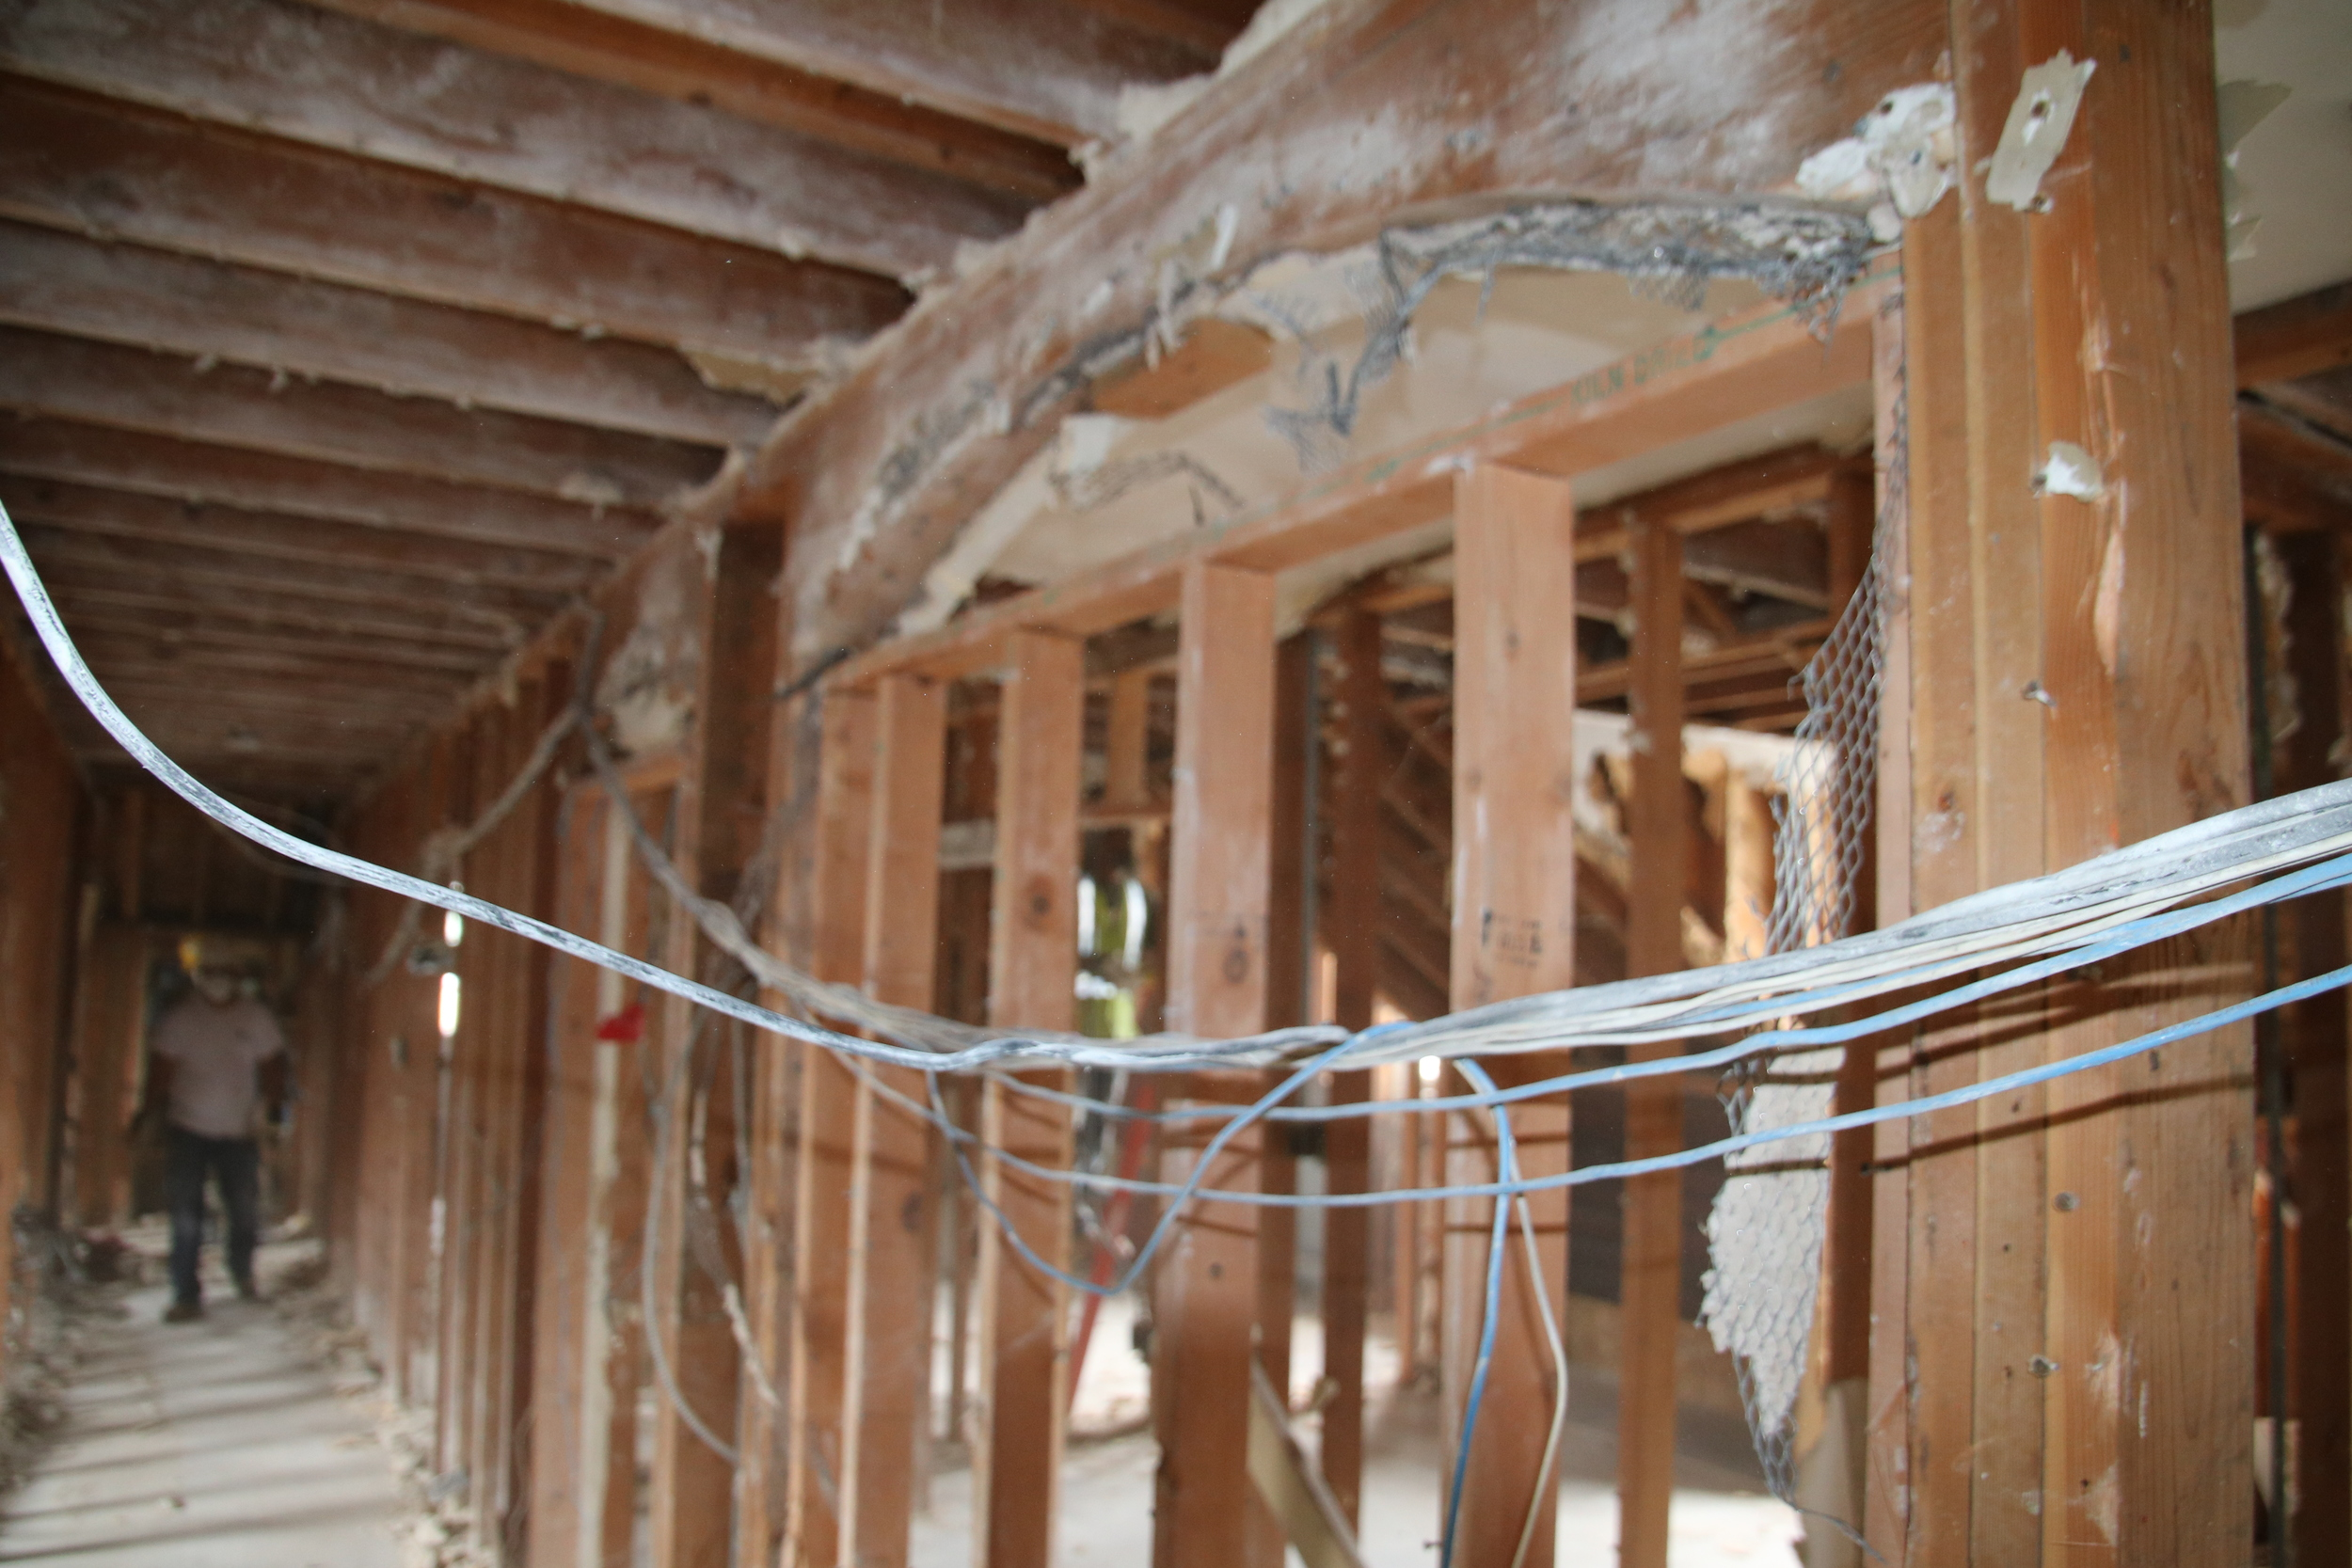 2015-07-20 existing arch framing at 3rd floor stair.JPG